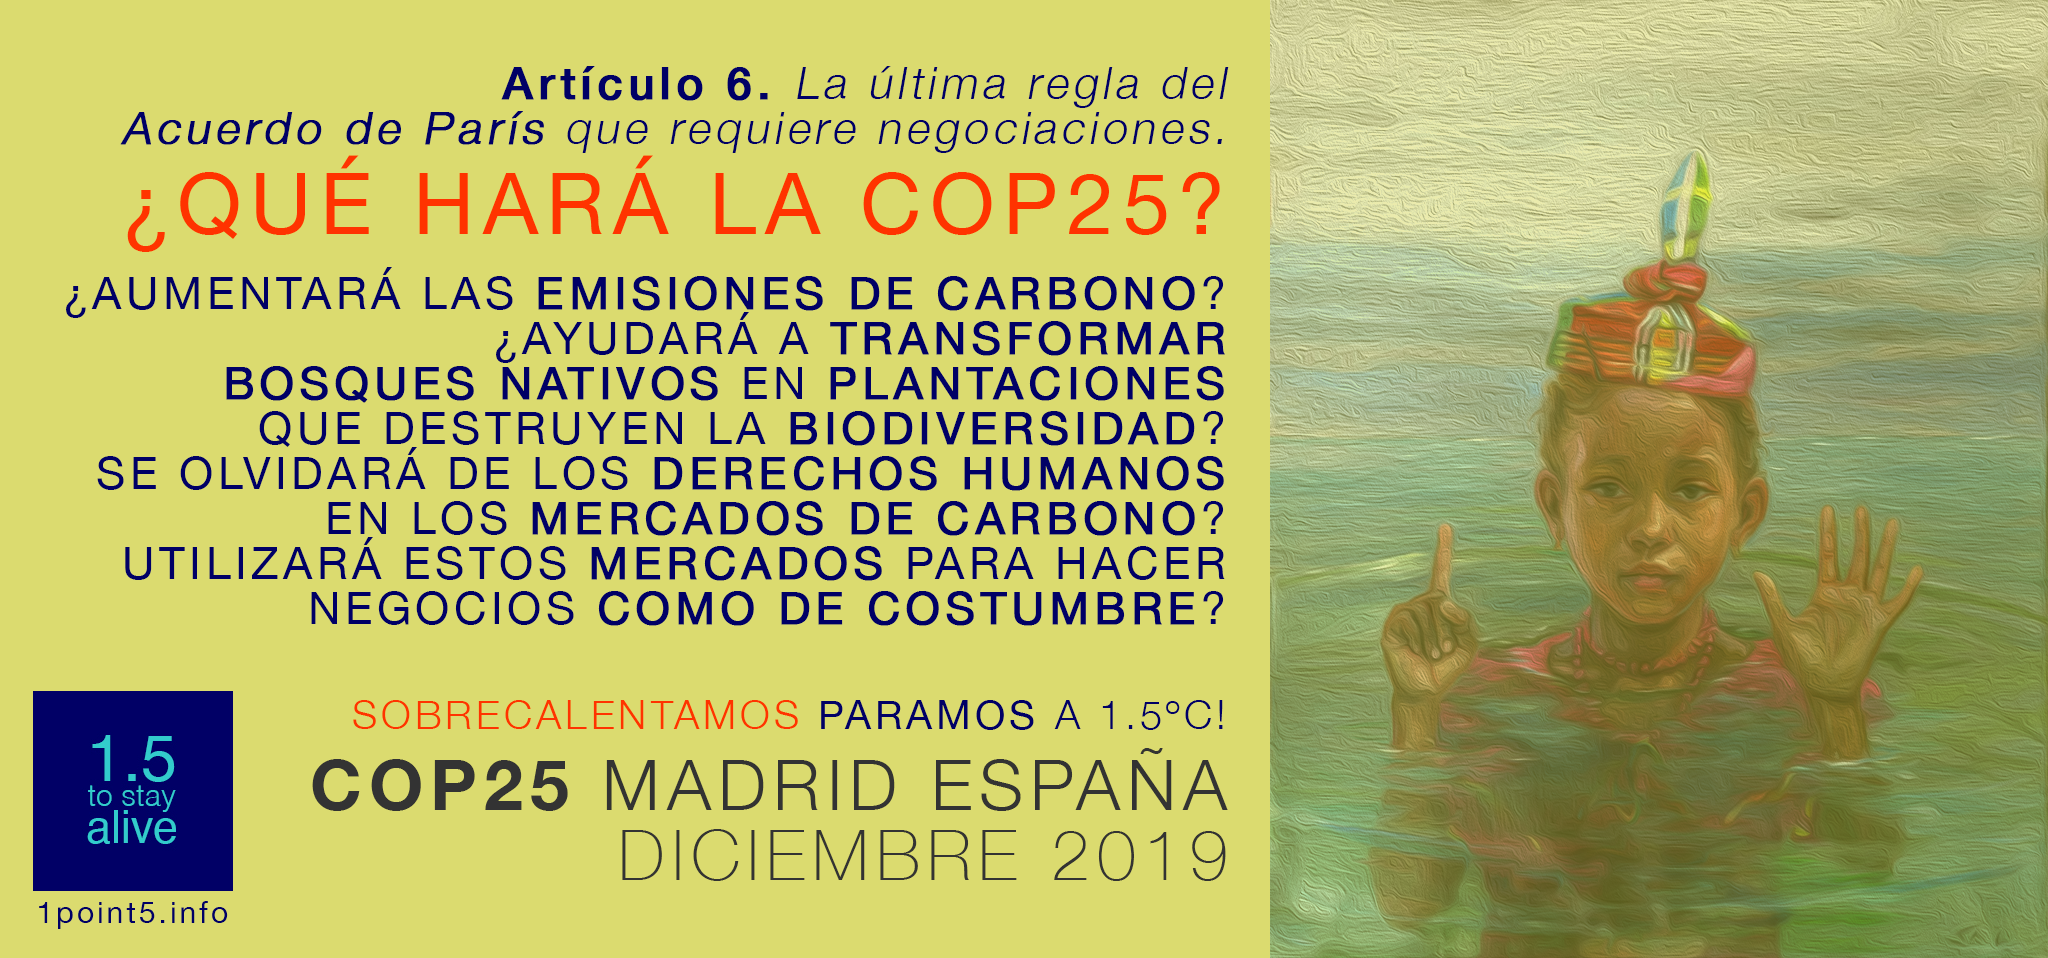 ES.slide4.COP25.website